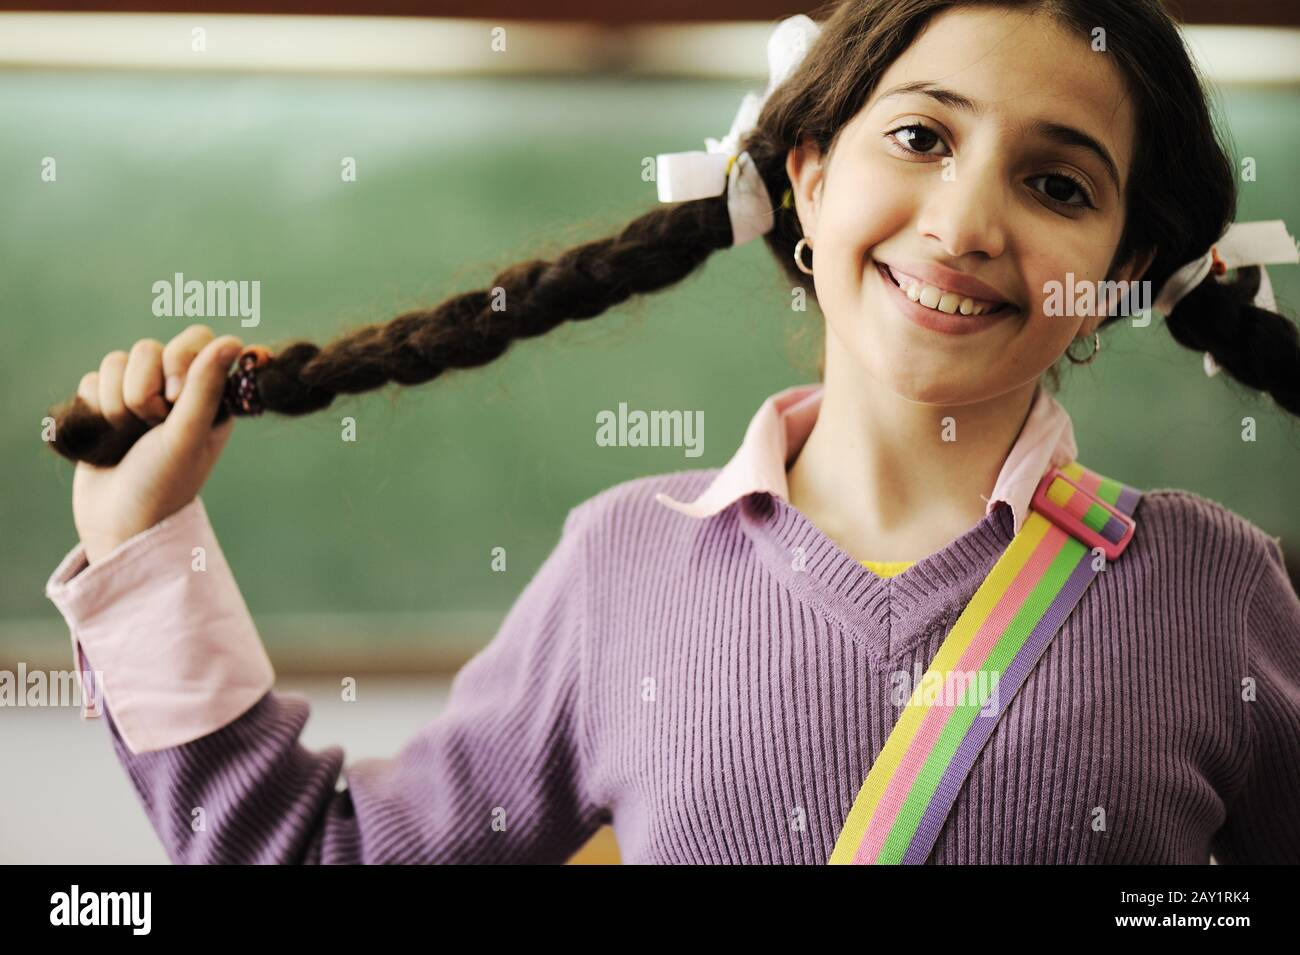 Cute Little Girl With Hair Braids At School Stock Photo 343633224